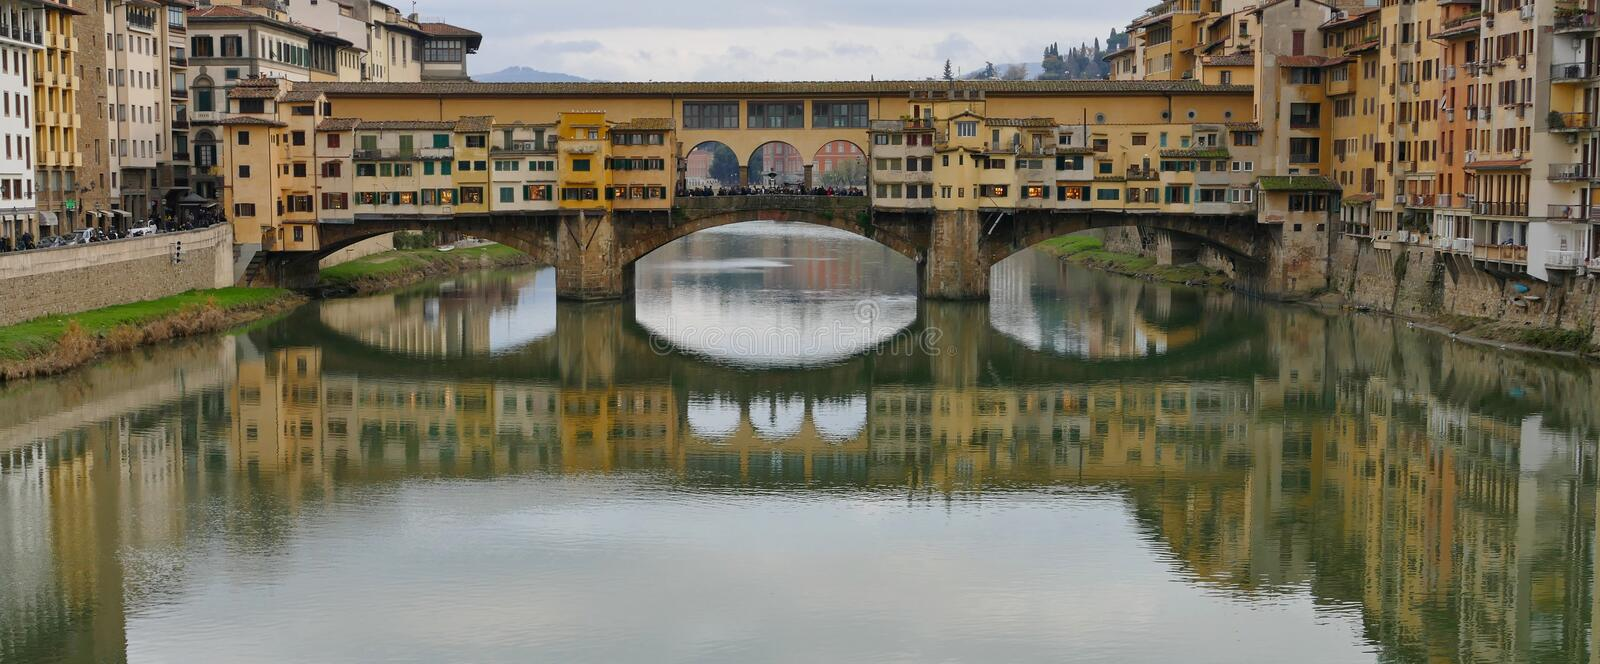 Ponte vecchio. Florence italy stock images